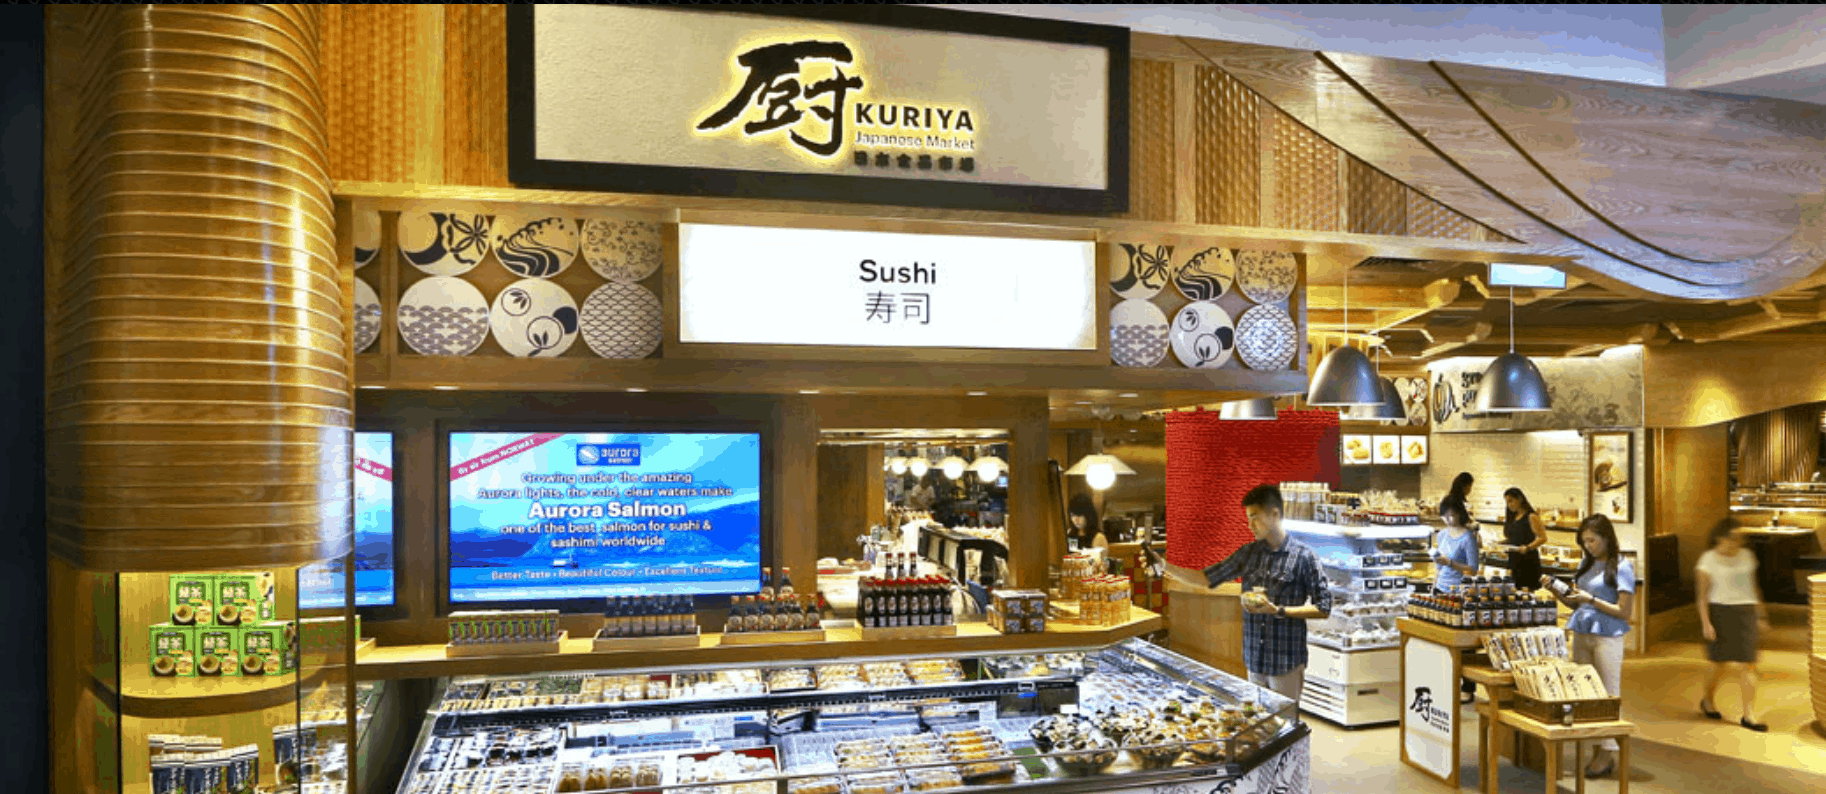 Kuriya Japanese Market is a Store That Sell Rare Japanese Snacks So You Don't find elsewhere,Where can I buy Japanese snacks in Singapore?,Kuriya menu singapore,What are some popular Japanese snacks?,Where can I buy Japanese snacks?,kuriya japanese market bento menu kuriya japanese market jem kuriya japanese market tiong bahru menu kuriya japanese market locations kuriya japanese market facebook kuriya japanese market opening hours kuriya japanese market bukit batok, What are Japanese snacks called?